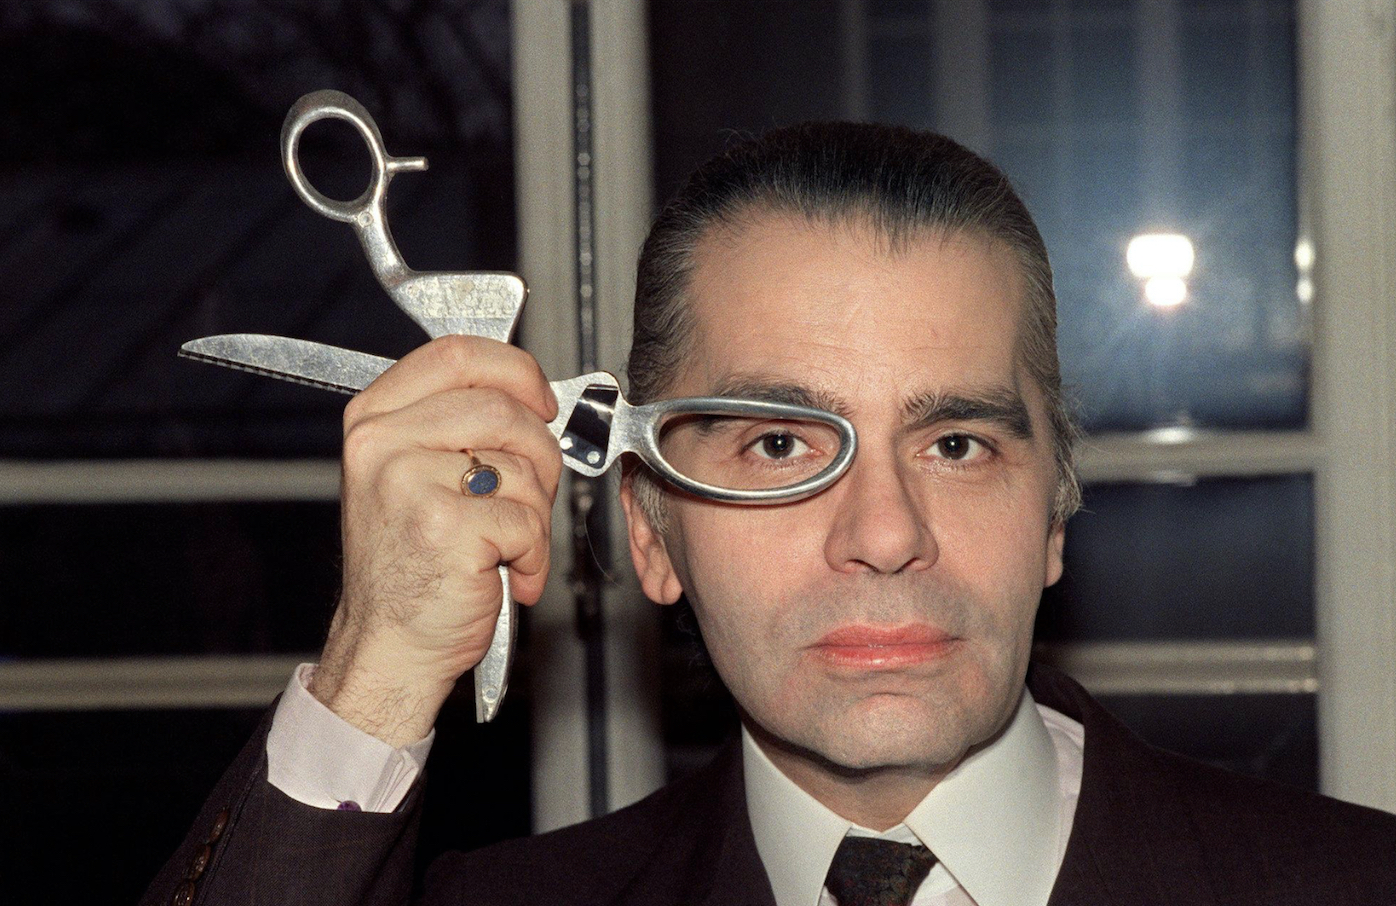 Remembering Karl Lagerfeld: King of Fashion